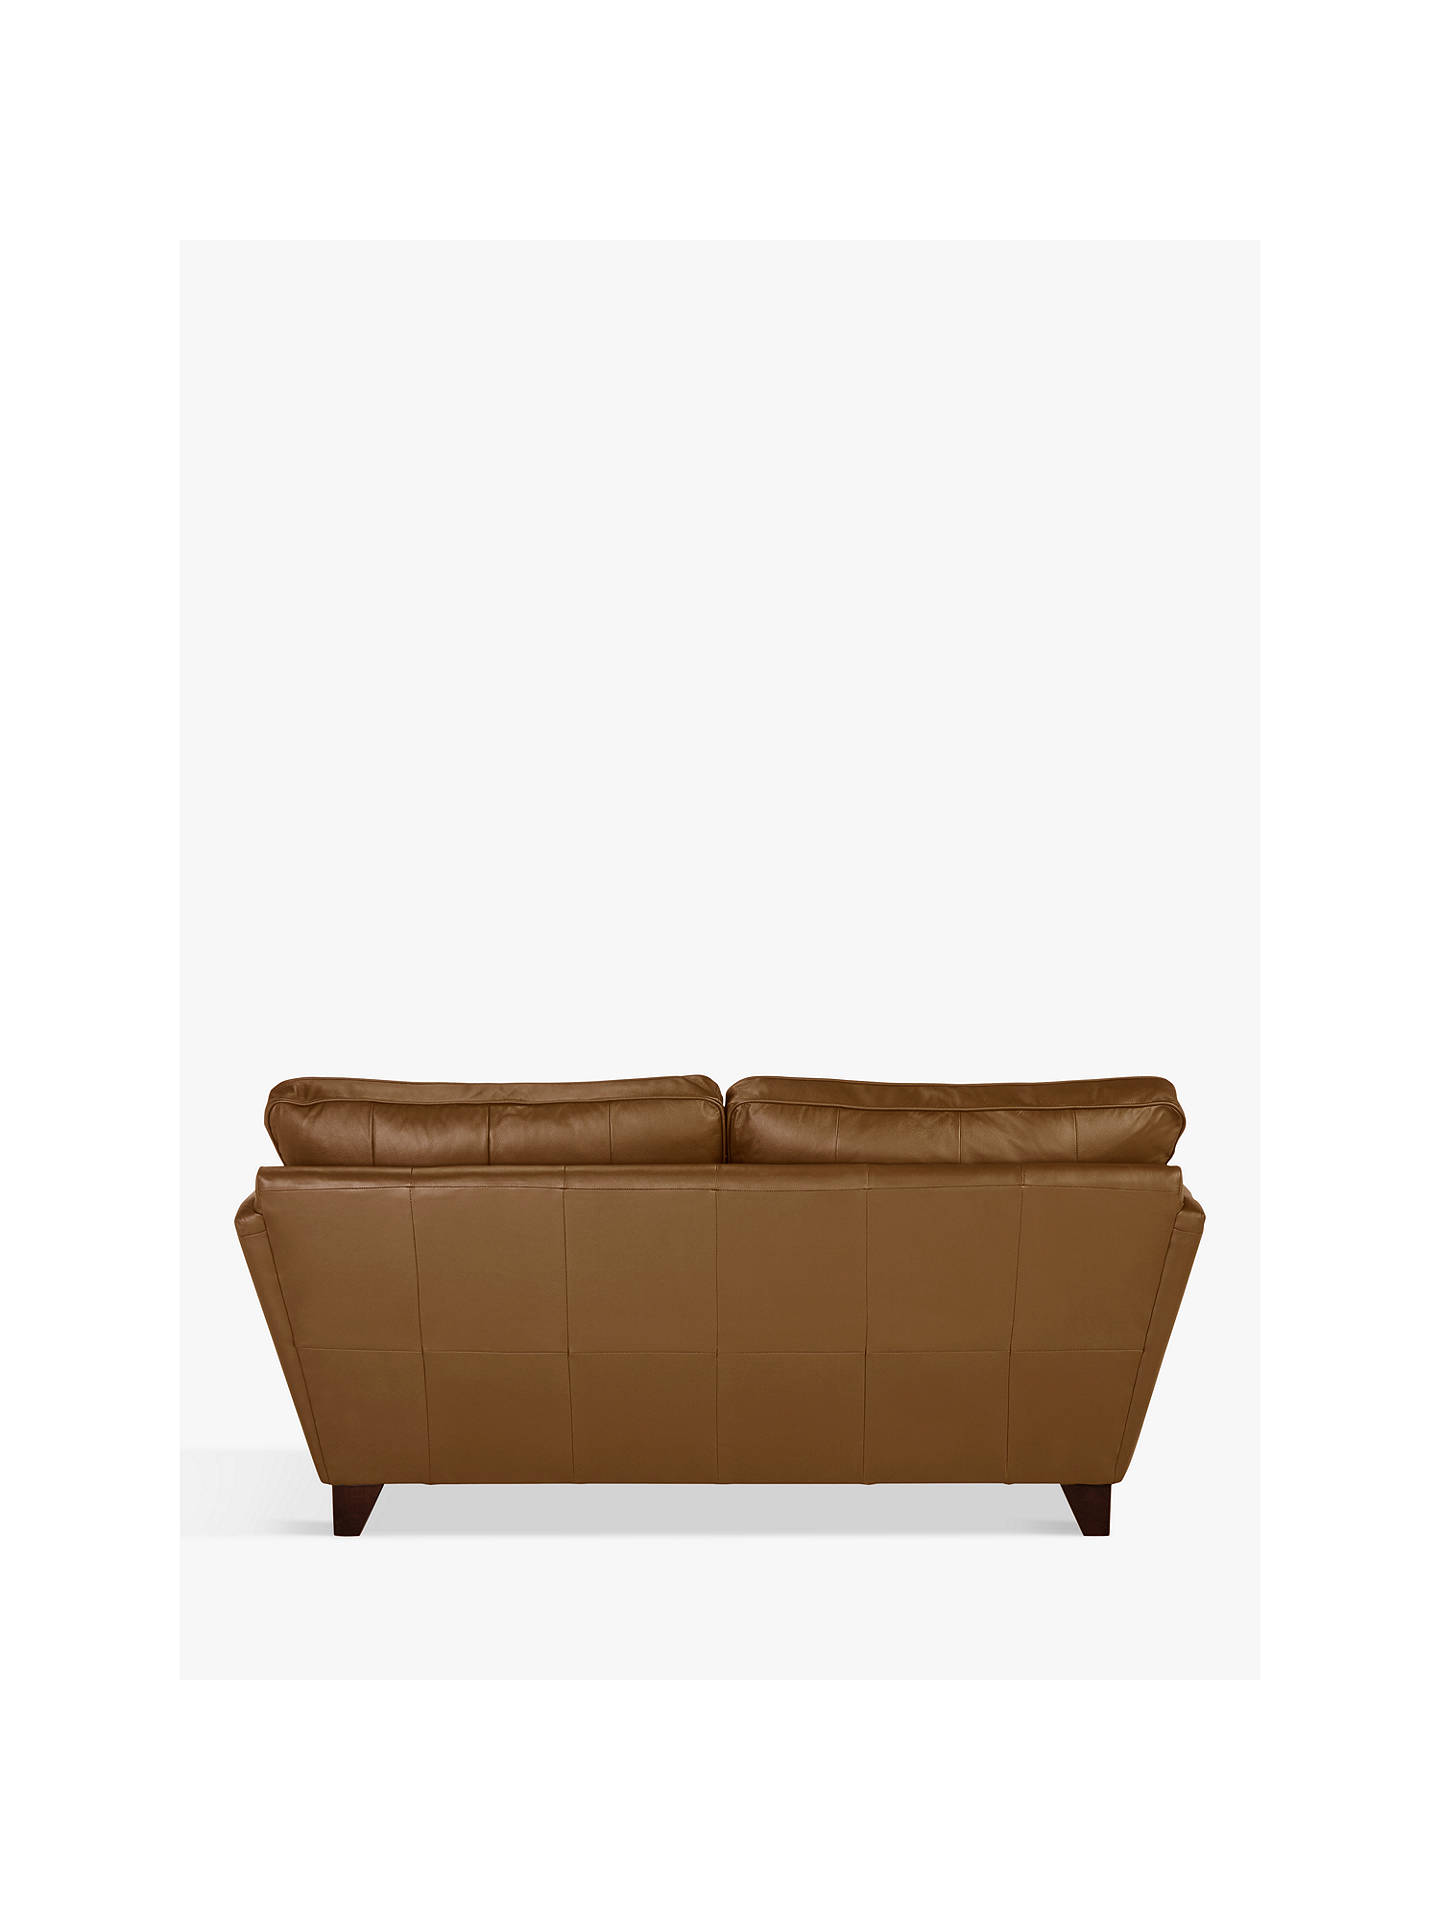 BuyJohn Lewis & Partners Oslo Small 2 Seater Leather Sofa, Dark Leg, Luster Cappucino Online at johnlewis.com